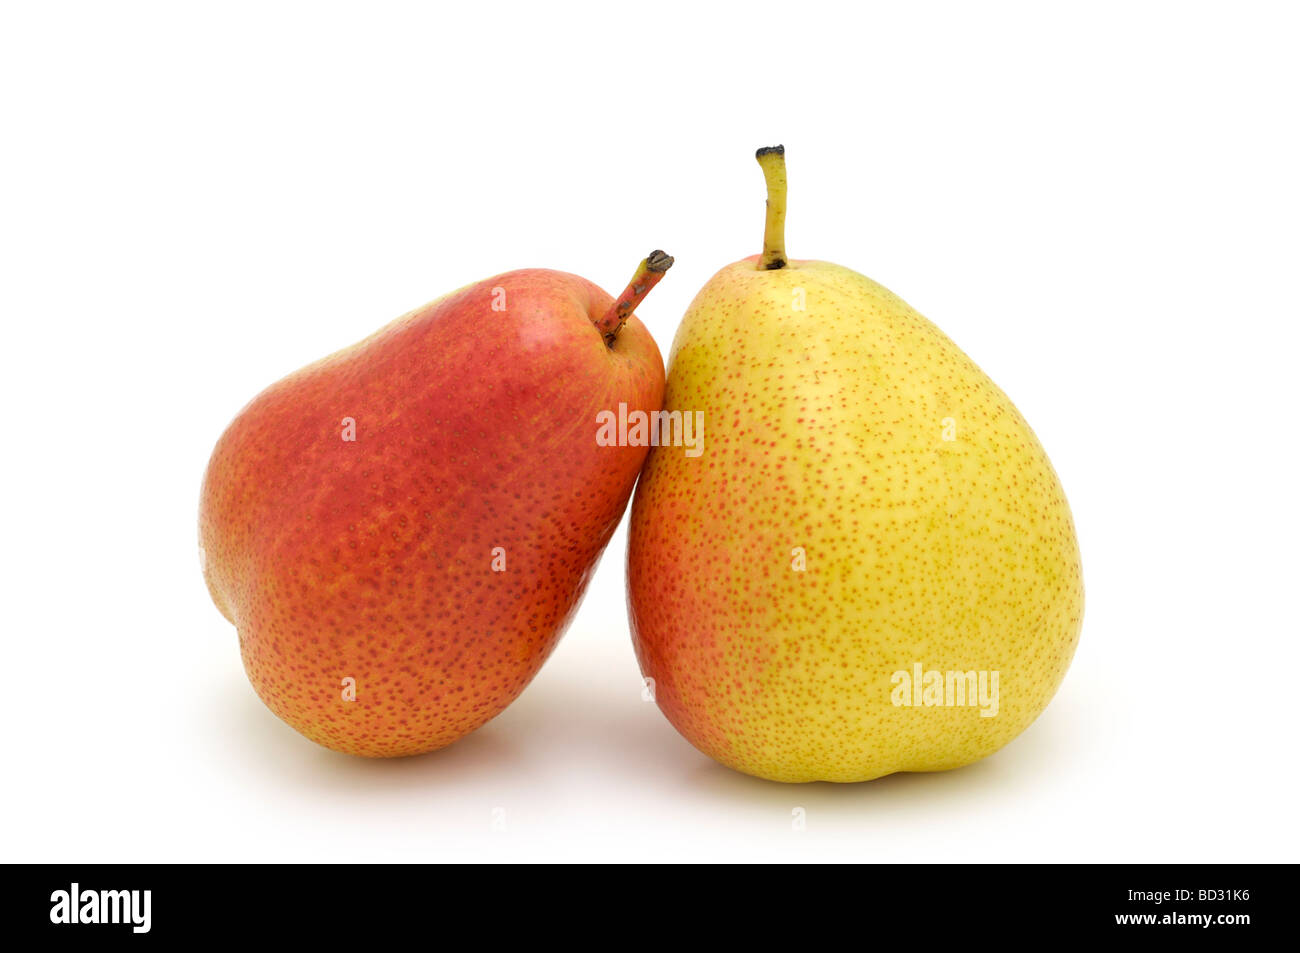 Pair of Forelle Pears - Stock Image